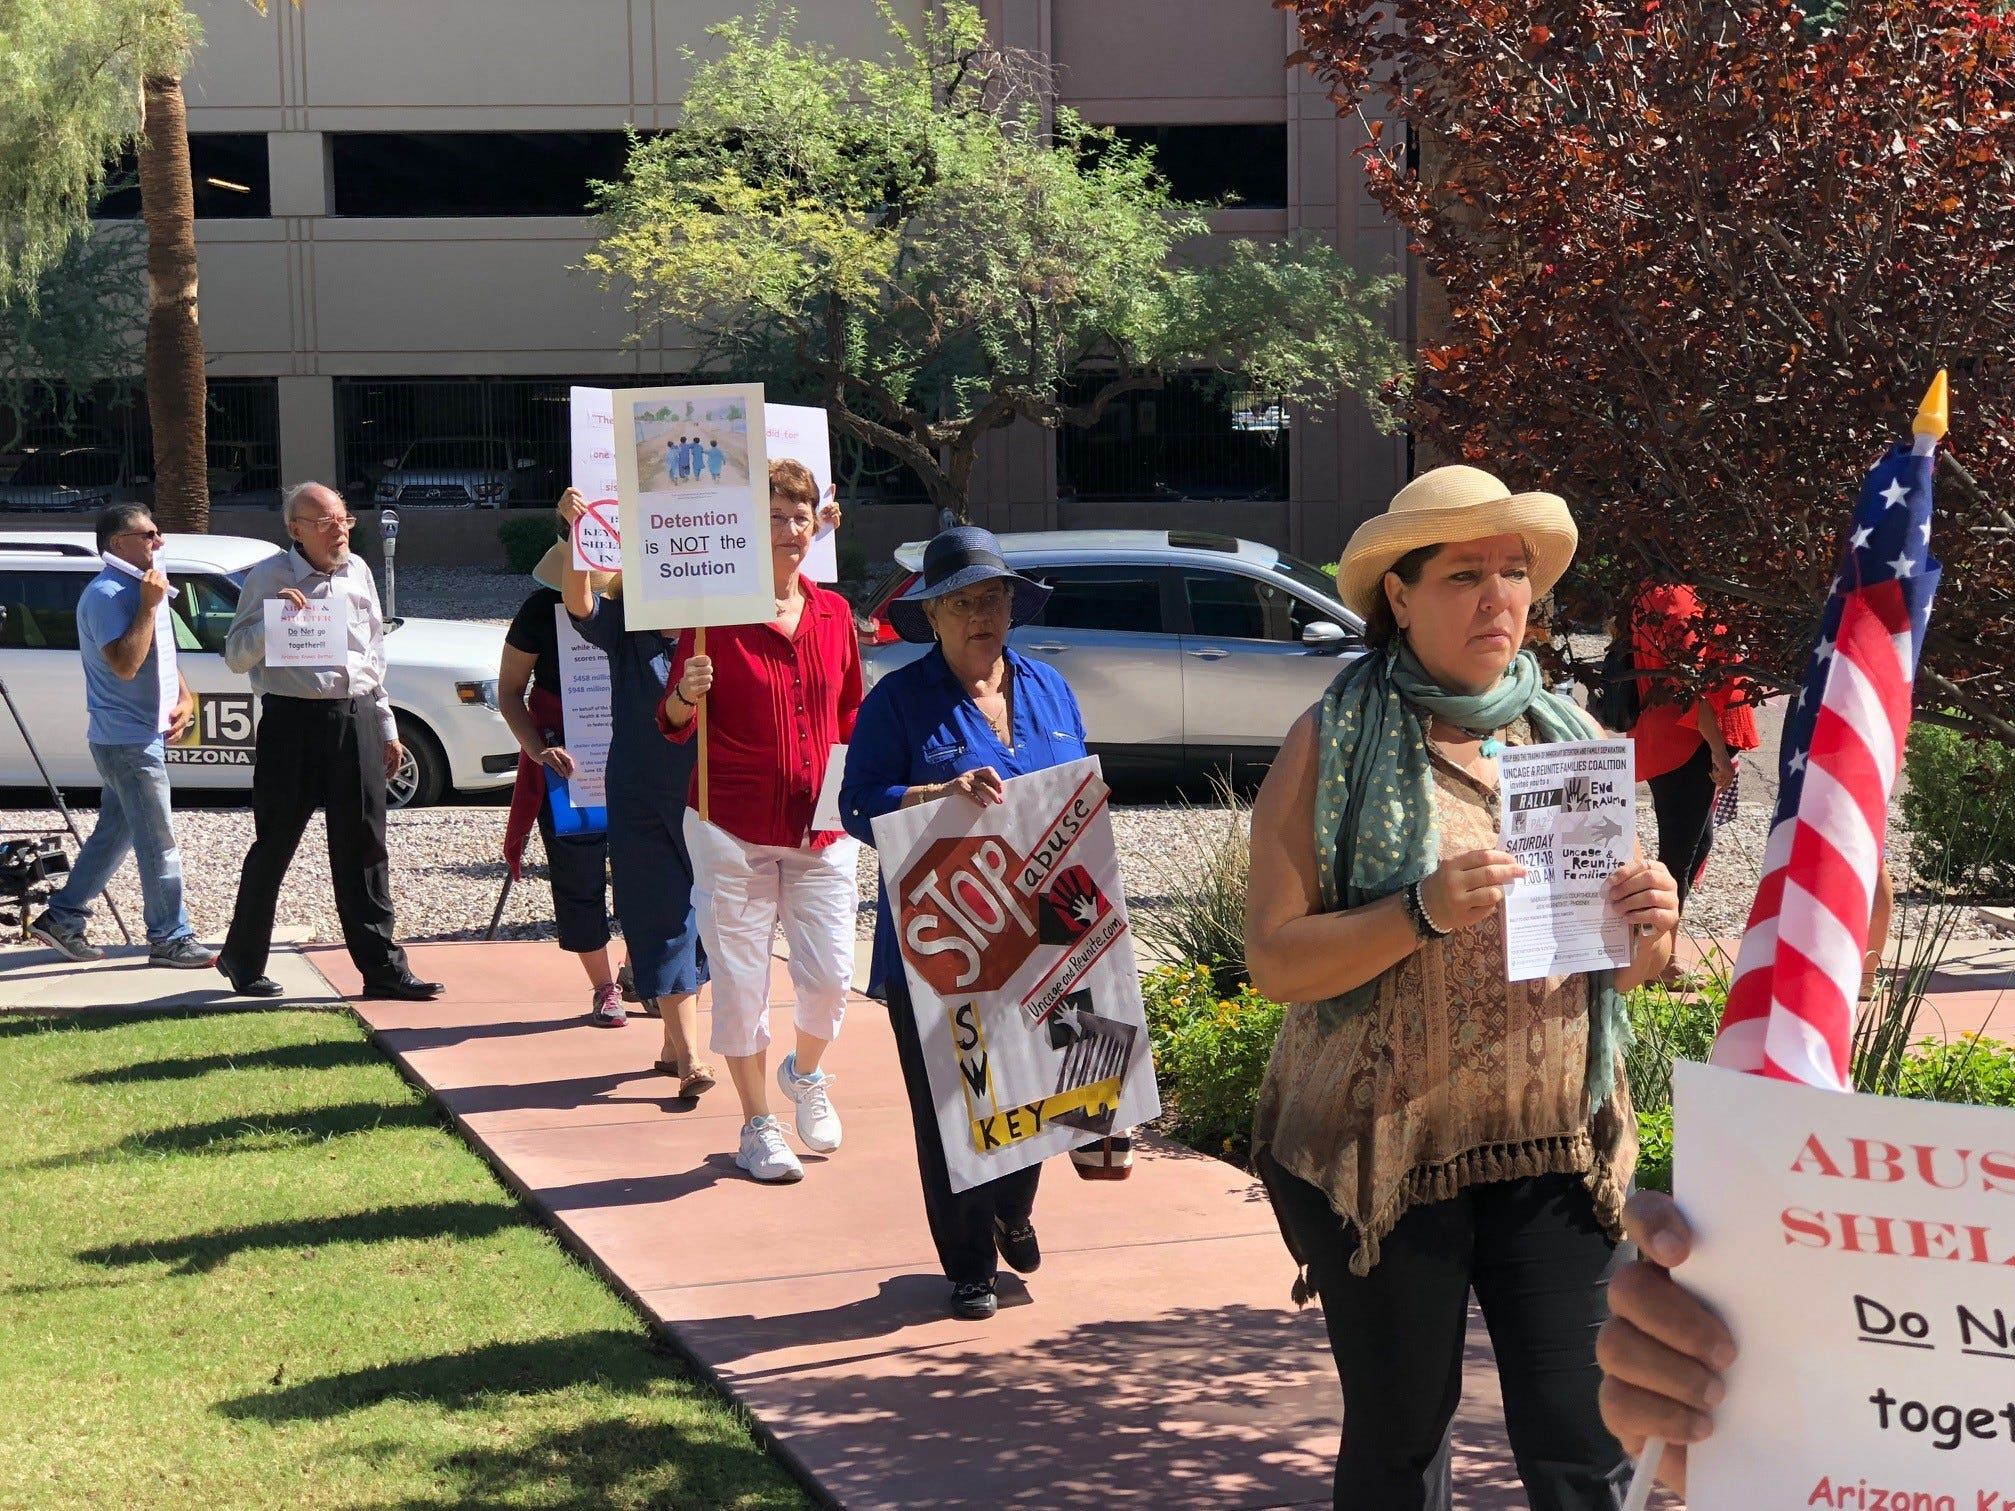 The Uncage & Reunite Families Coalition protests Tuesday morning in front of the Arizona Department of Health Services building.